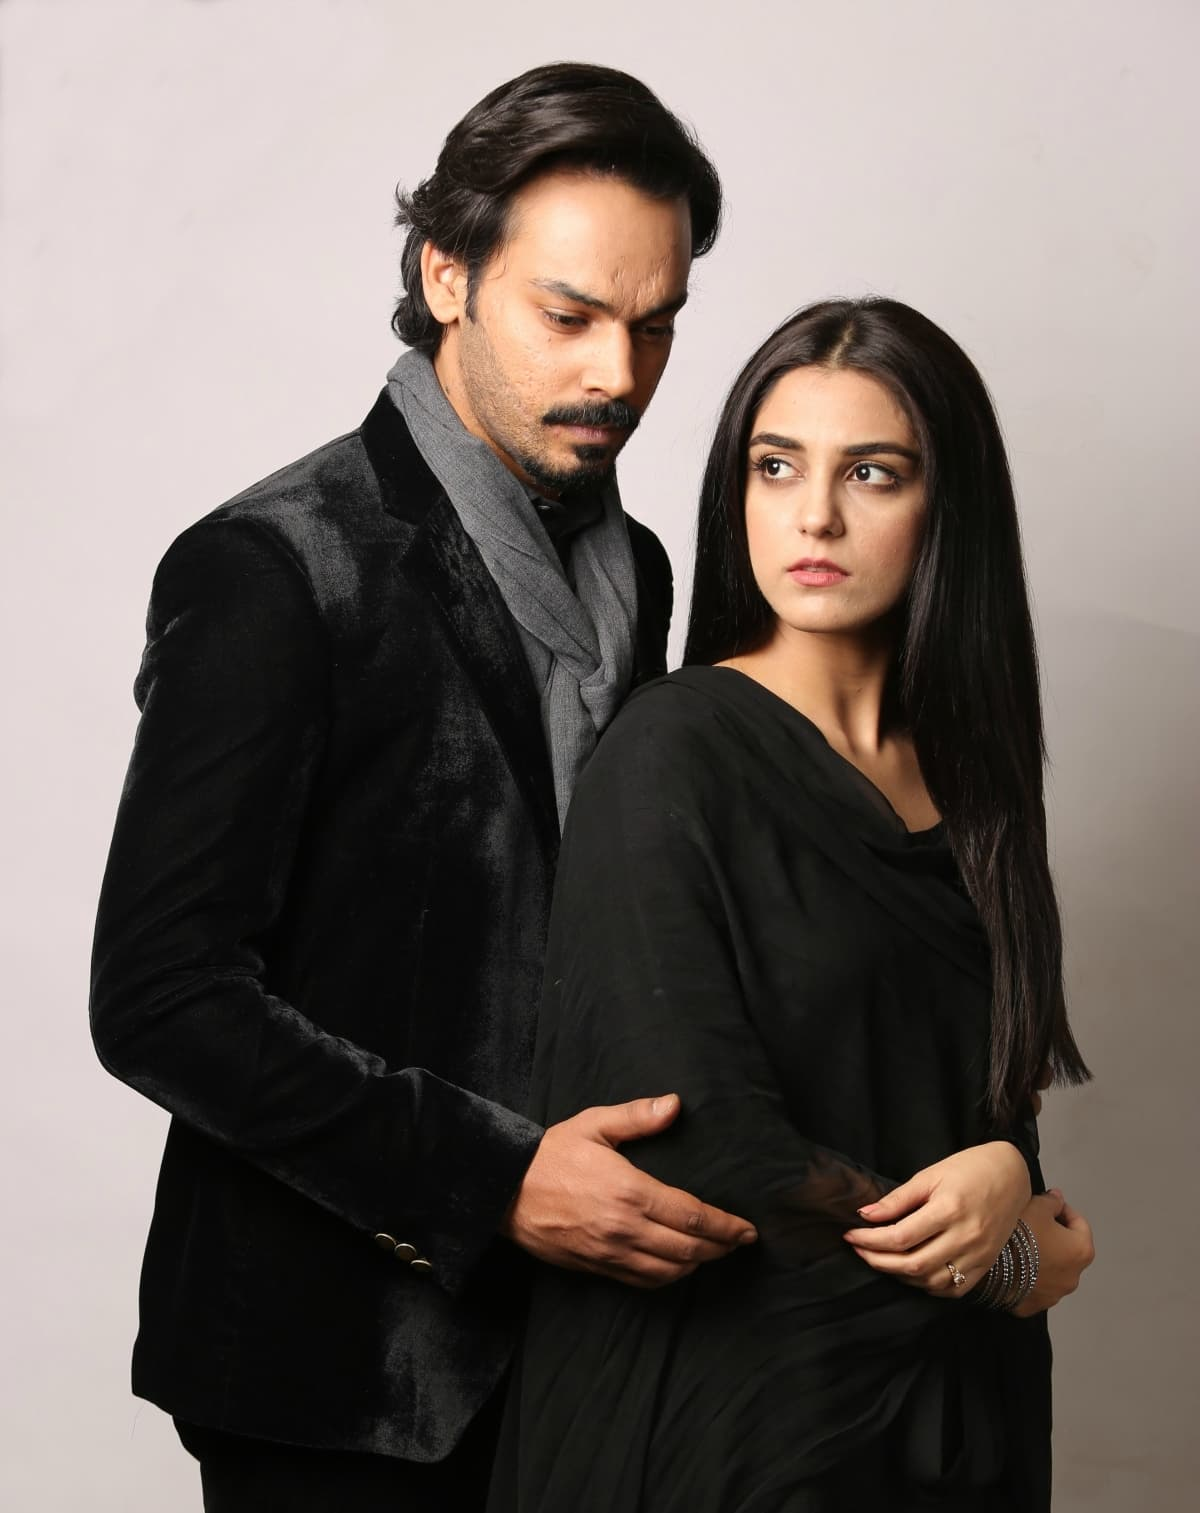 Is a love triangle in the offing? Gohar Rasheed stars as Mannu's prospective husband Mikaal